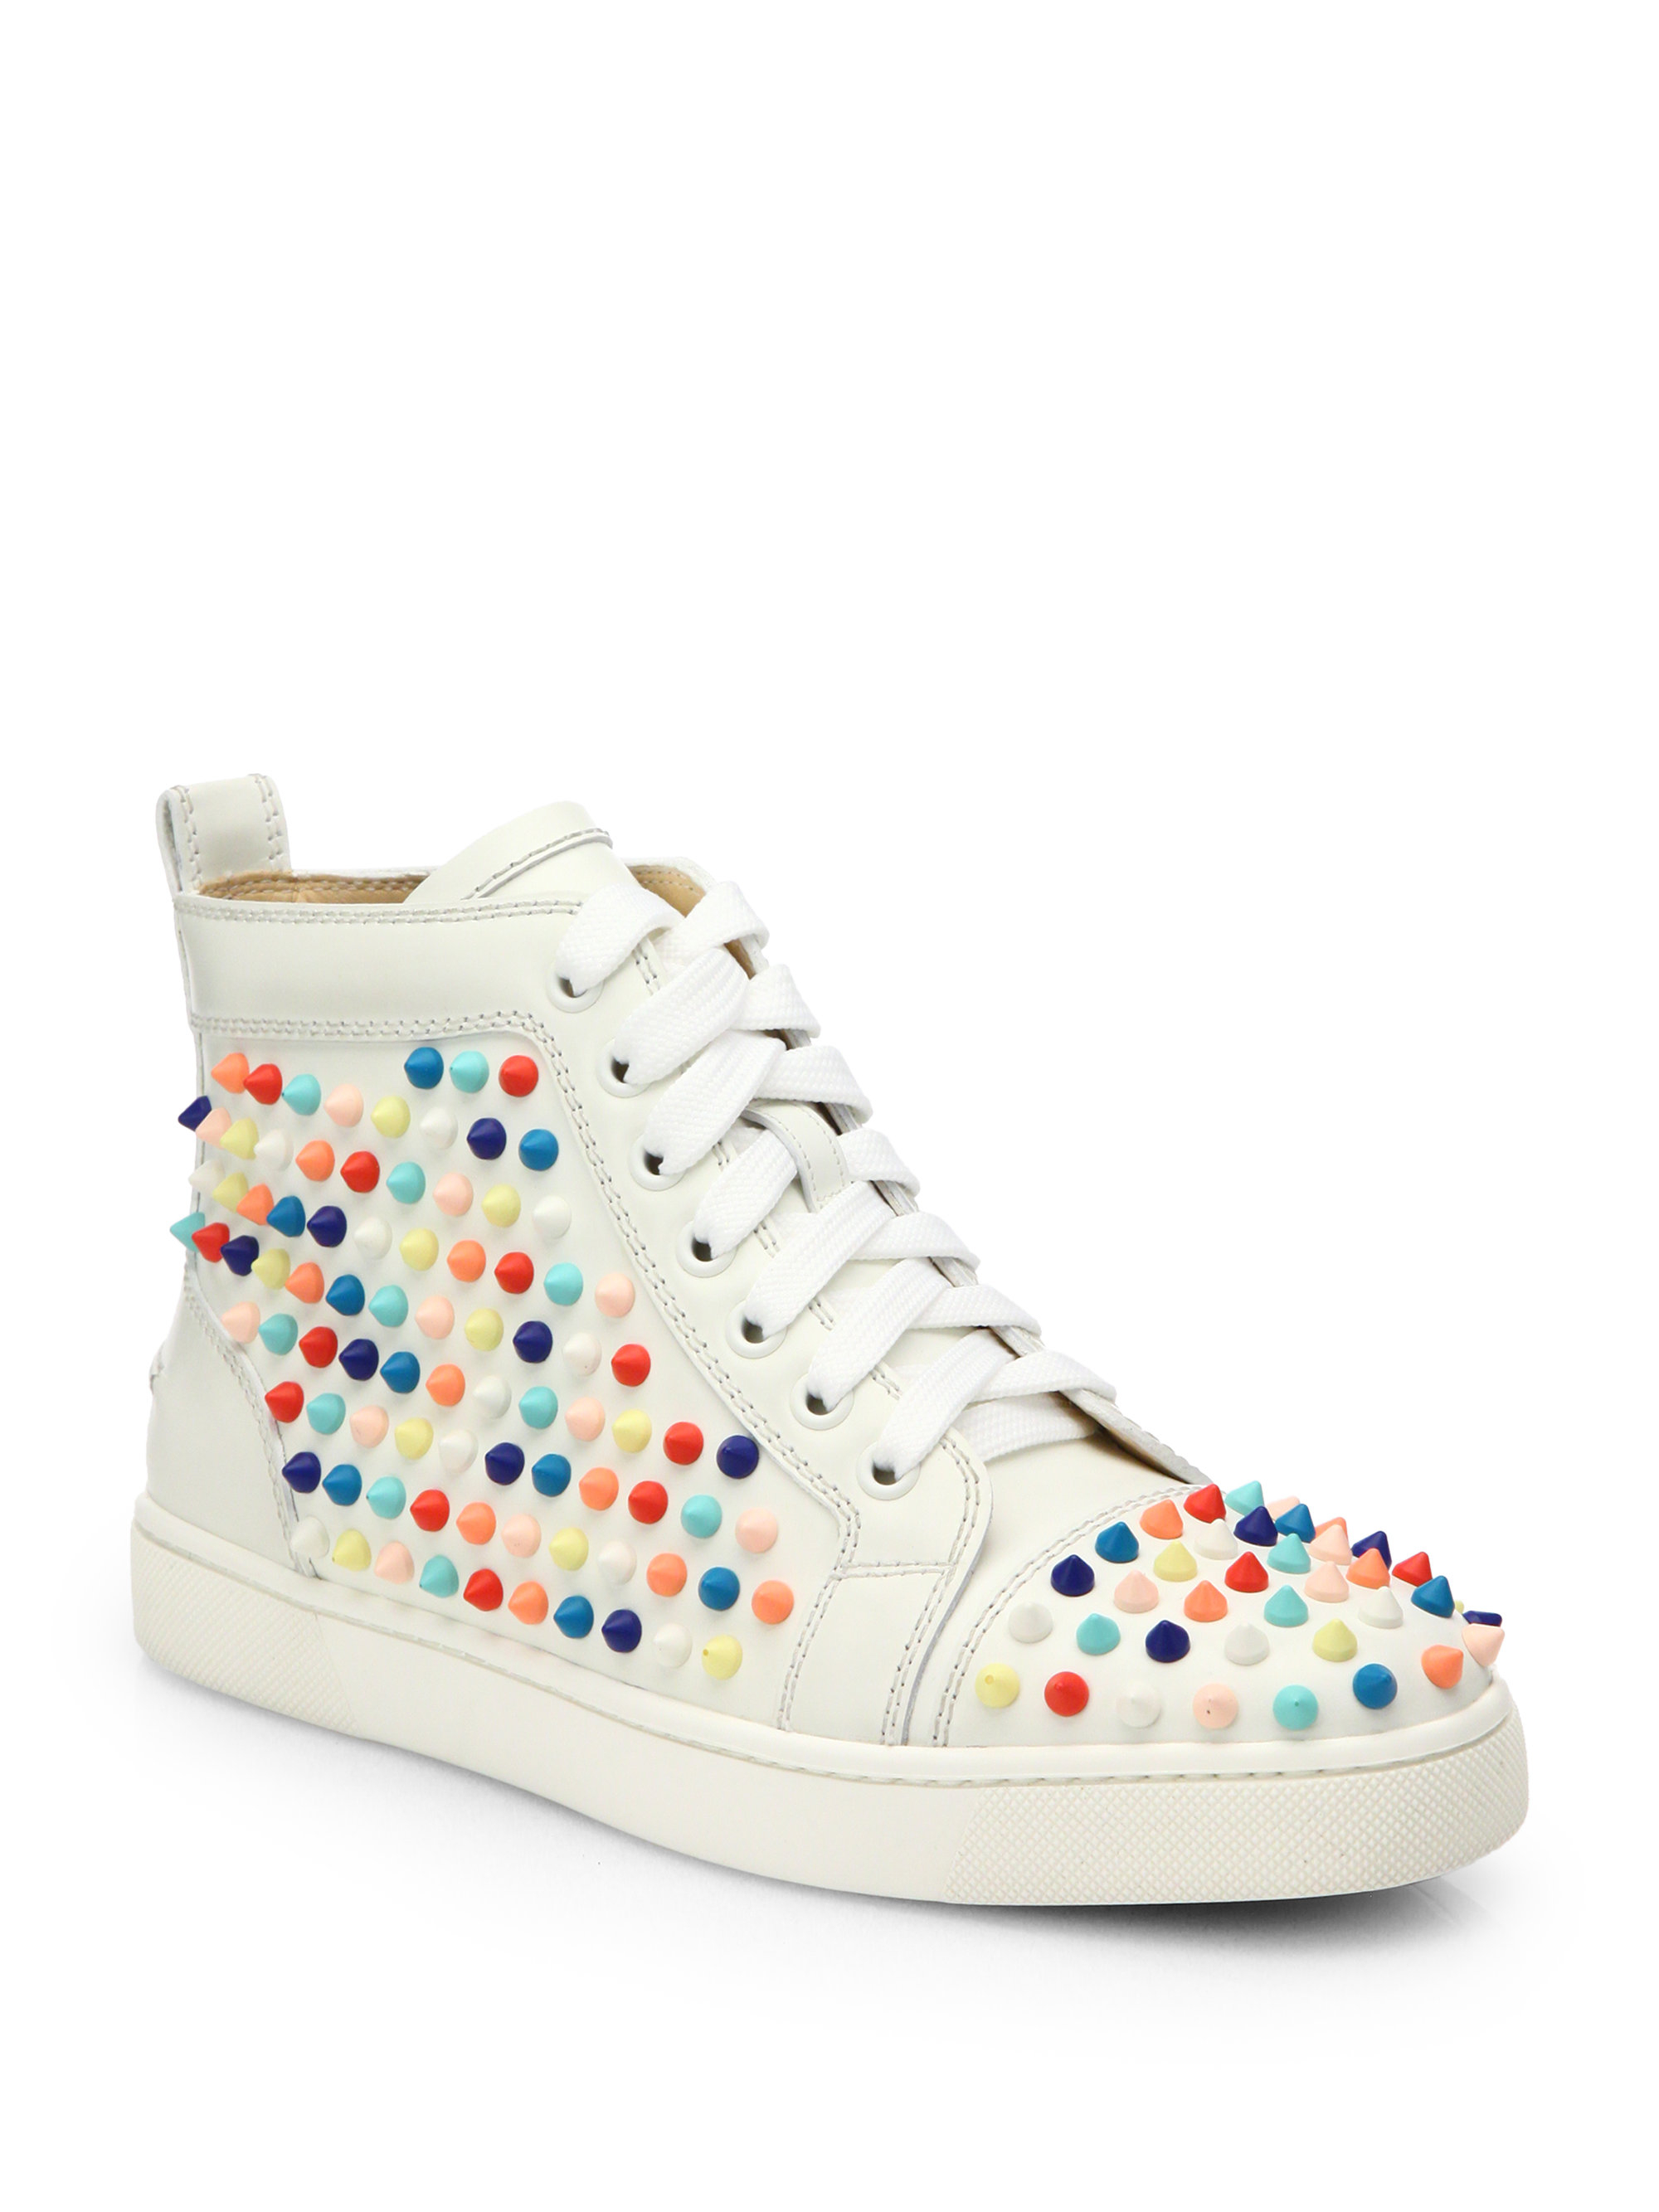 buy popular c6fac 3b215 Christian Louboutin White Louis Woman Studded Leather Wedge Sneakers